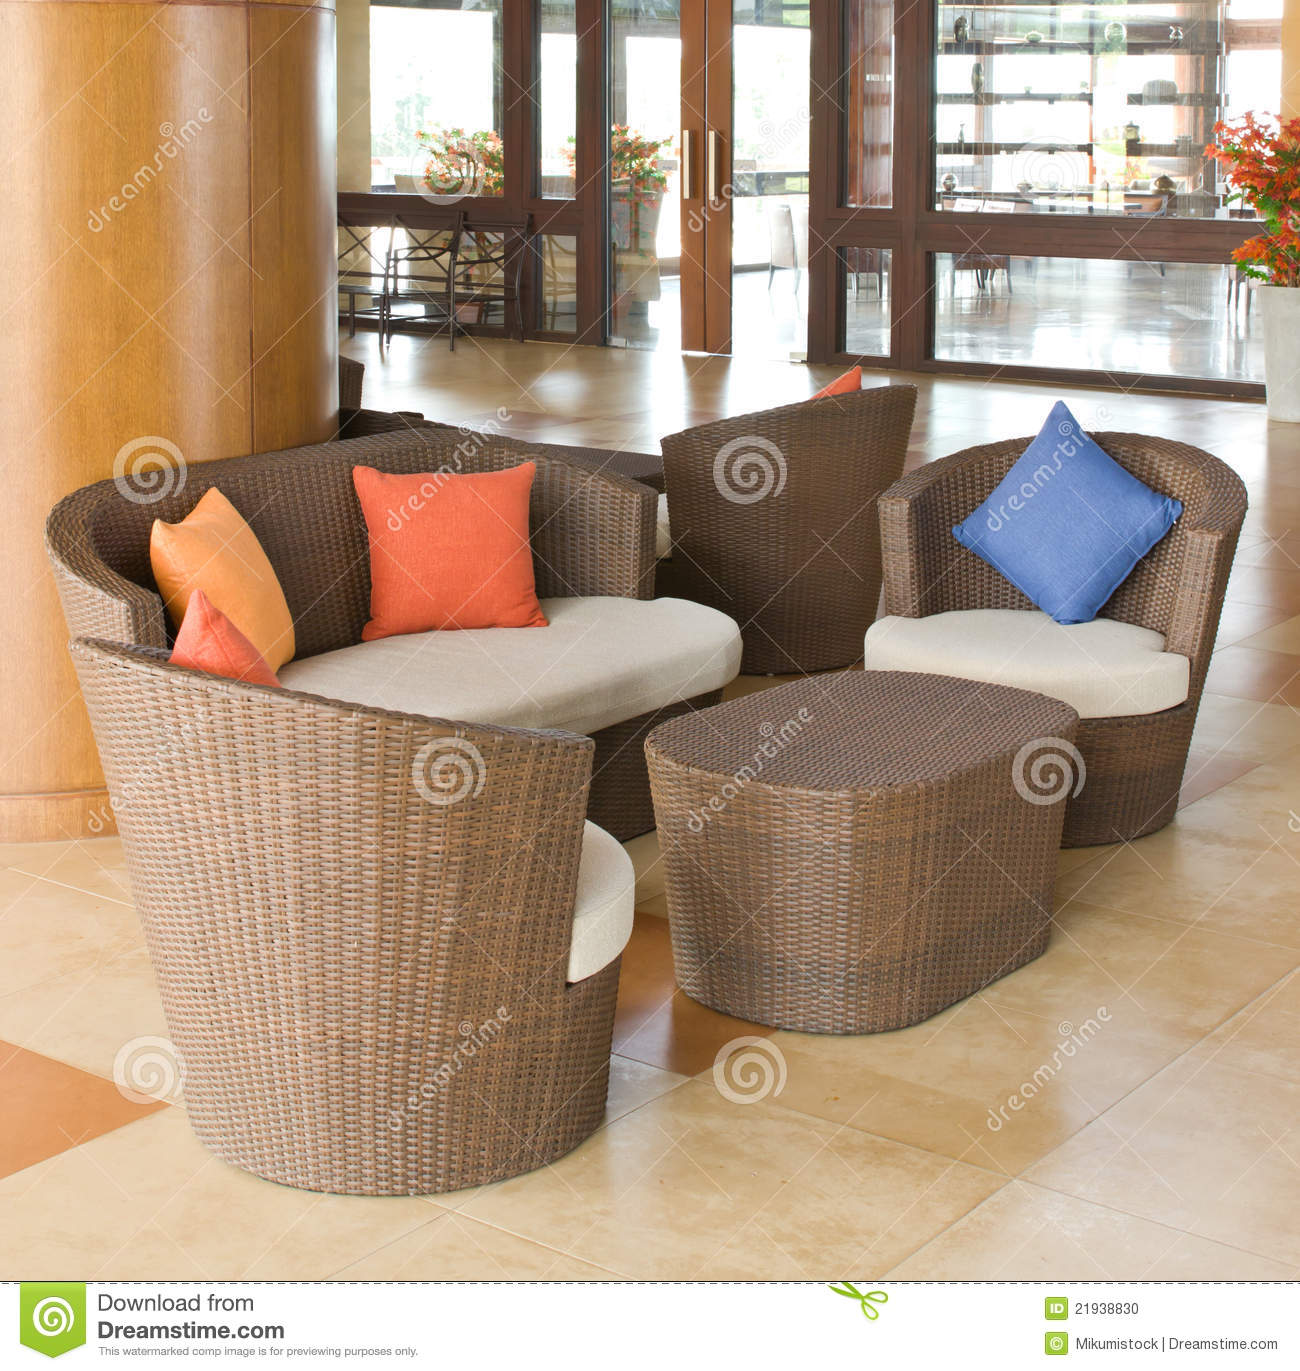 Sensational Luxury Outdoor Furniture Stock Photo Image Of Place 21938830 Caraccident5 Cool Chair Designs And Ideas Caraccident5Info